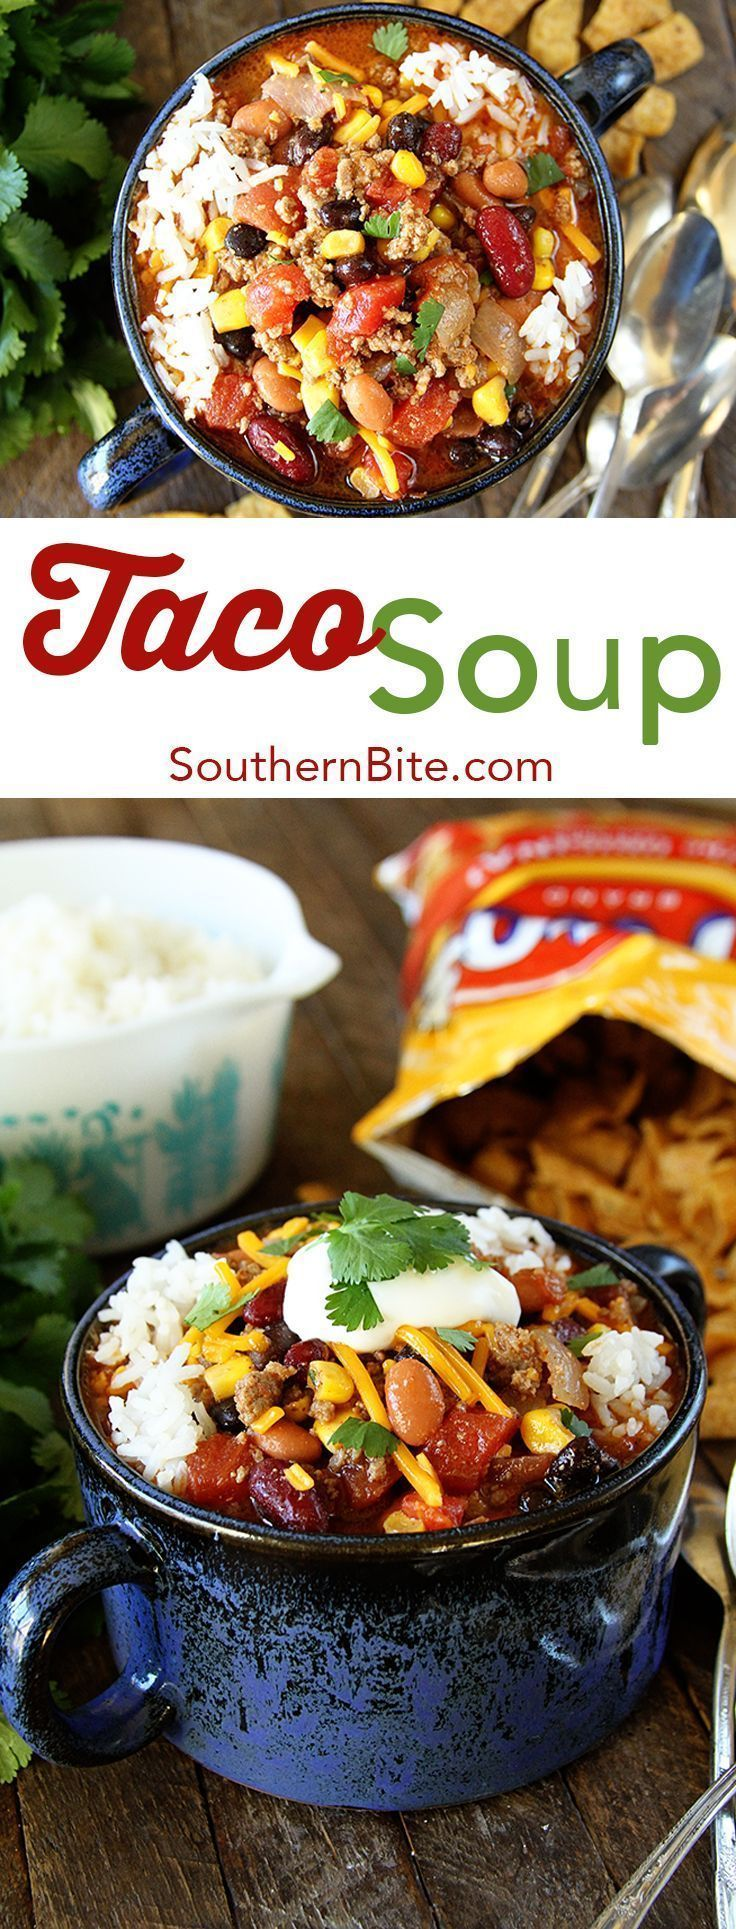 It seriously couldn't get any easier than this Taco Soup! If you can brown beef, you can totally make this! And it's PACKED with flavor!